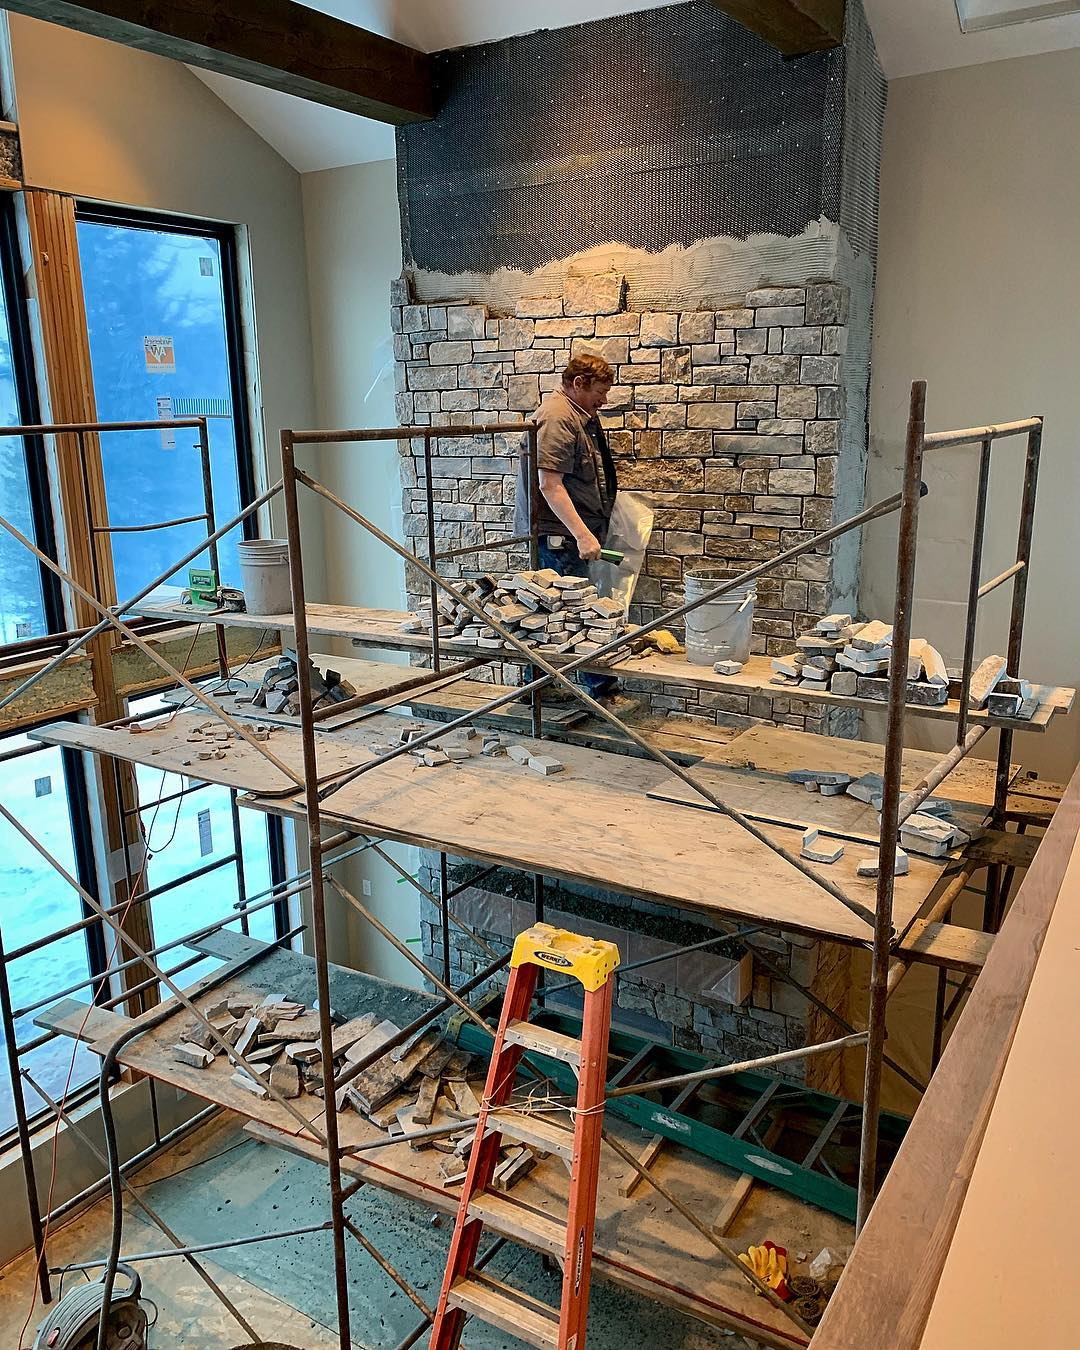 Closer to the top! About 26 feet of Montana rock getting stacked here. @montanarockworks whitefish custom home builder